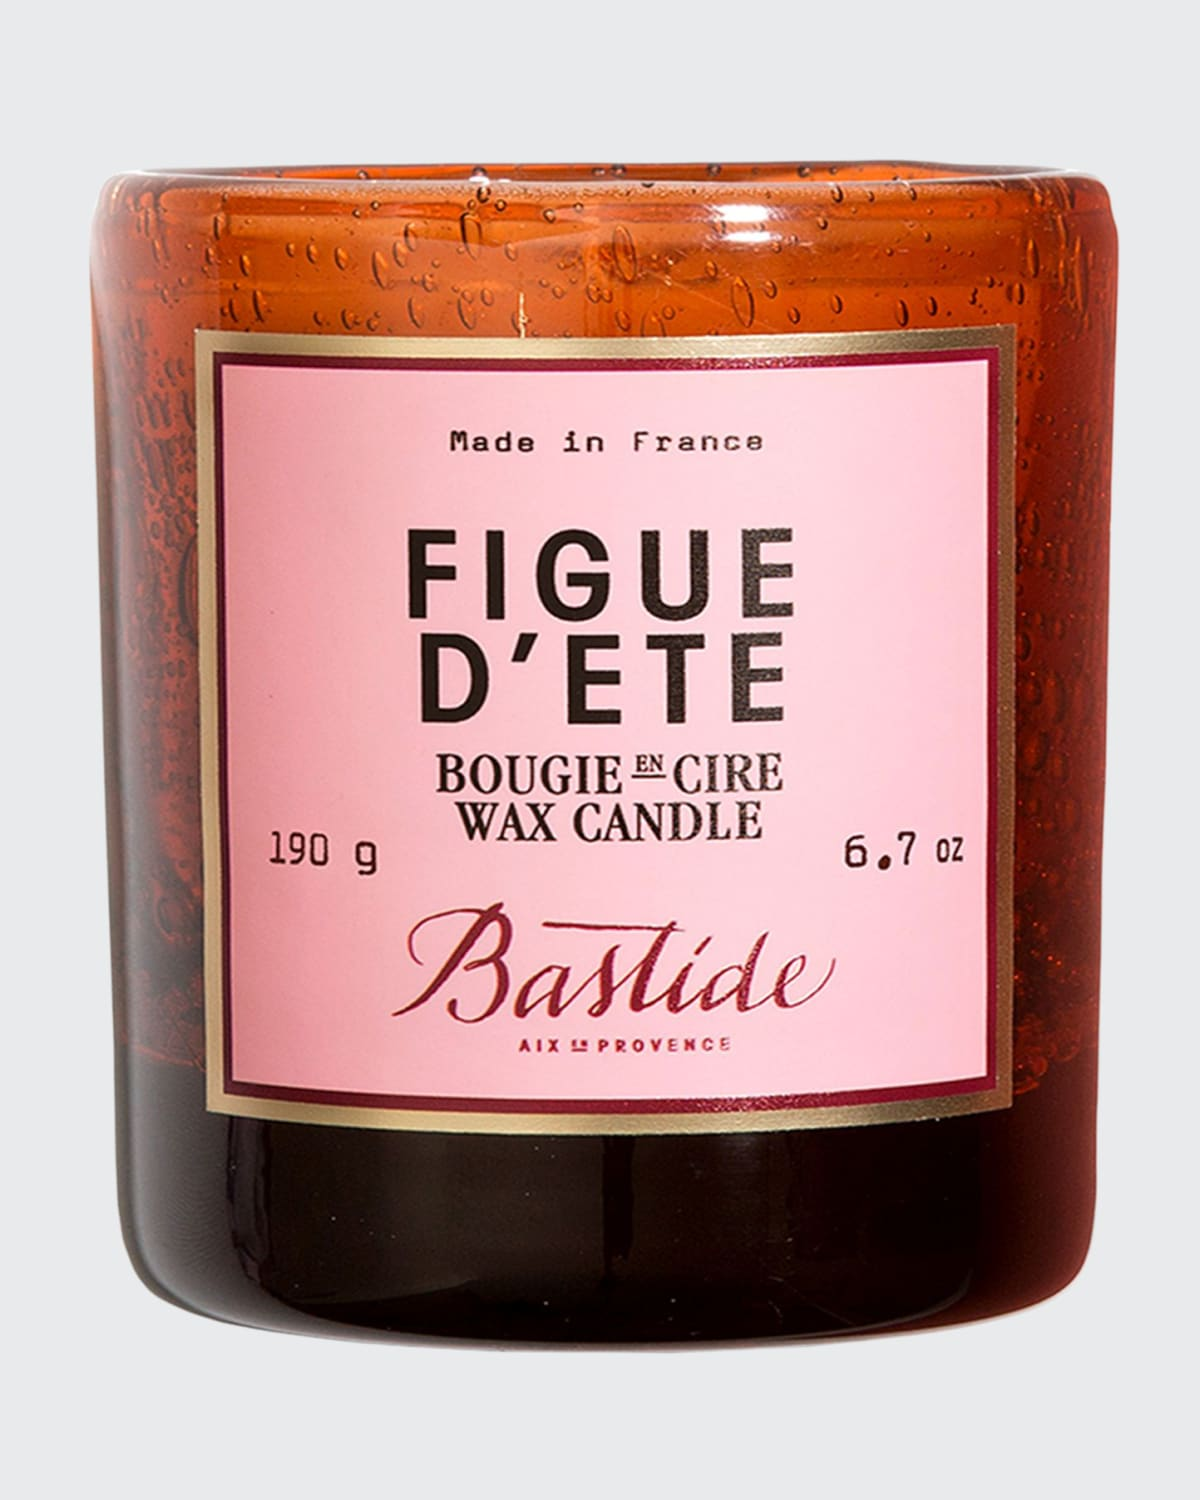 Figue d'Ete Wax Candle